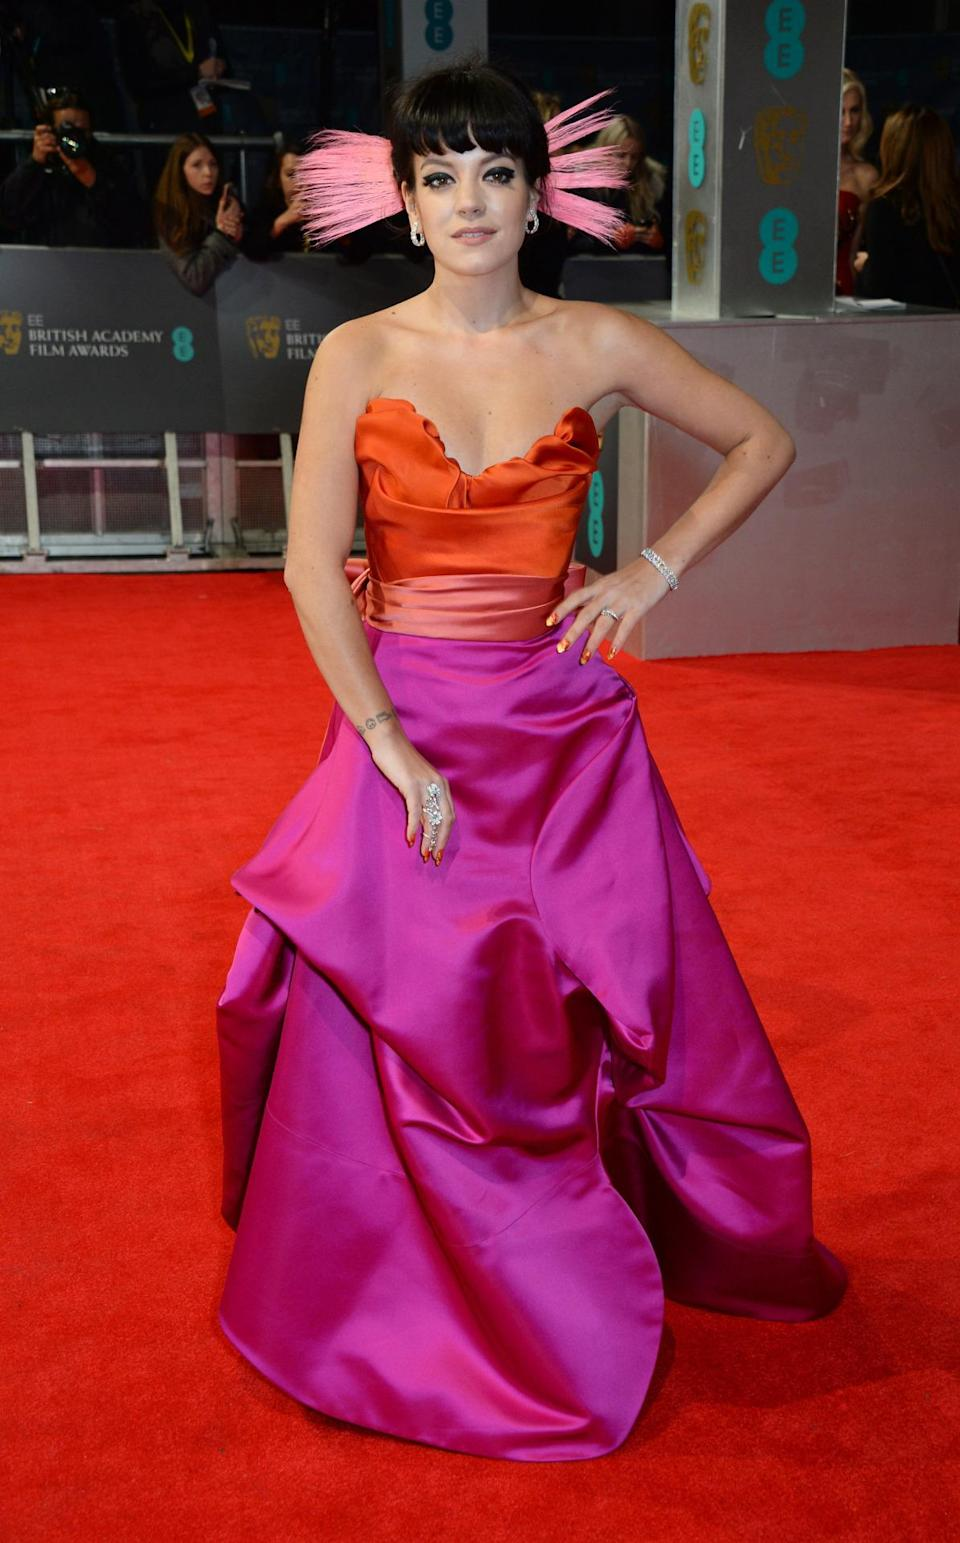 Both Lily Allen and Vivienne Westwood aren't afraid of taking chances, so the pairing worked out perfectly when the singer attended the British Academy Film Awards in 2014.